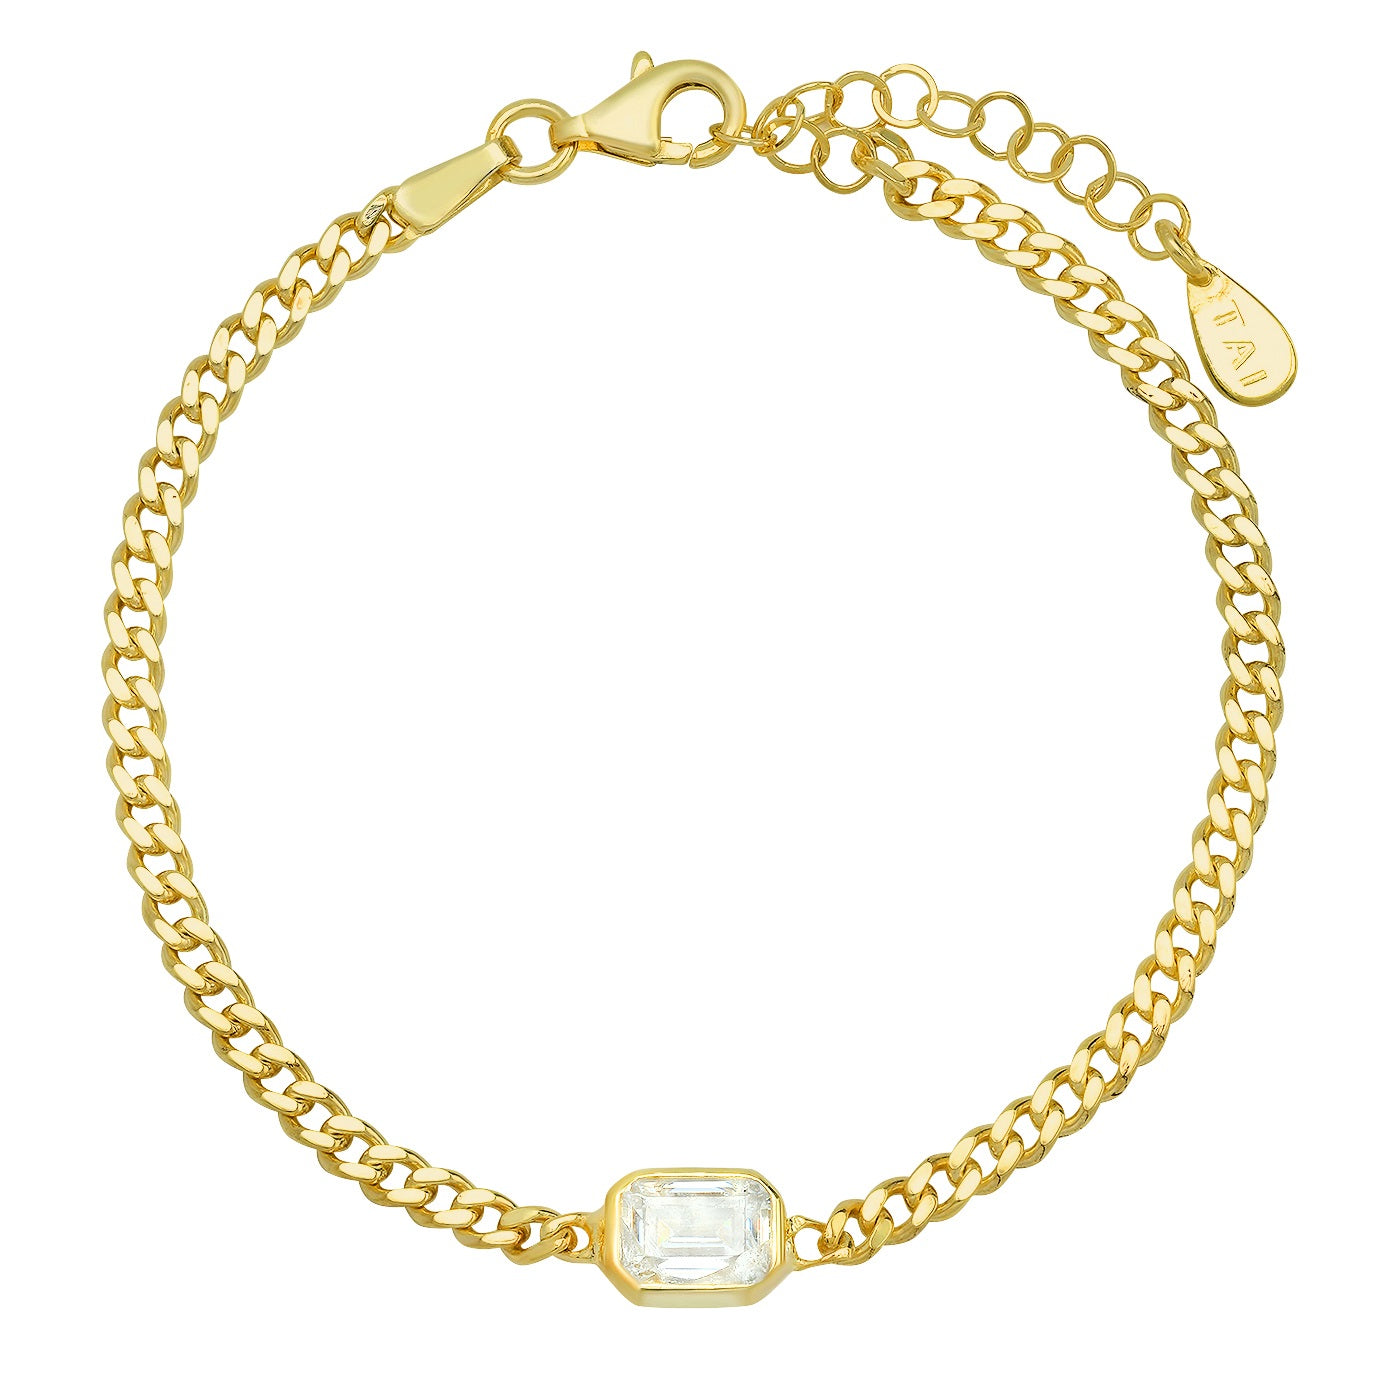 Gold Chain Bracelet With Bezel Set Emerald Cut Center Stone